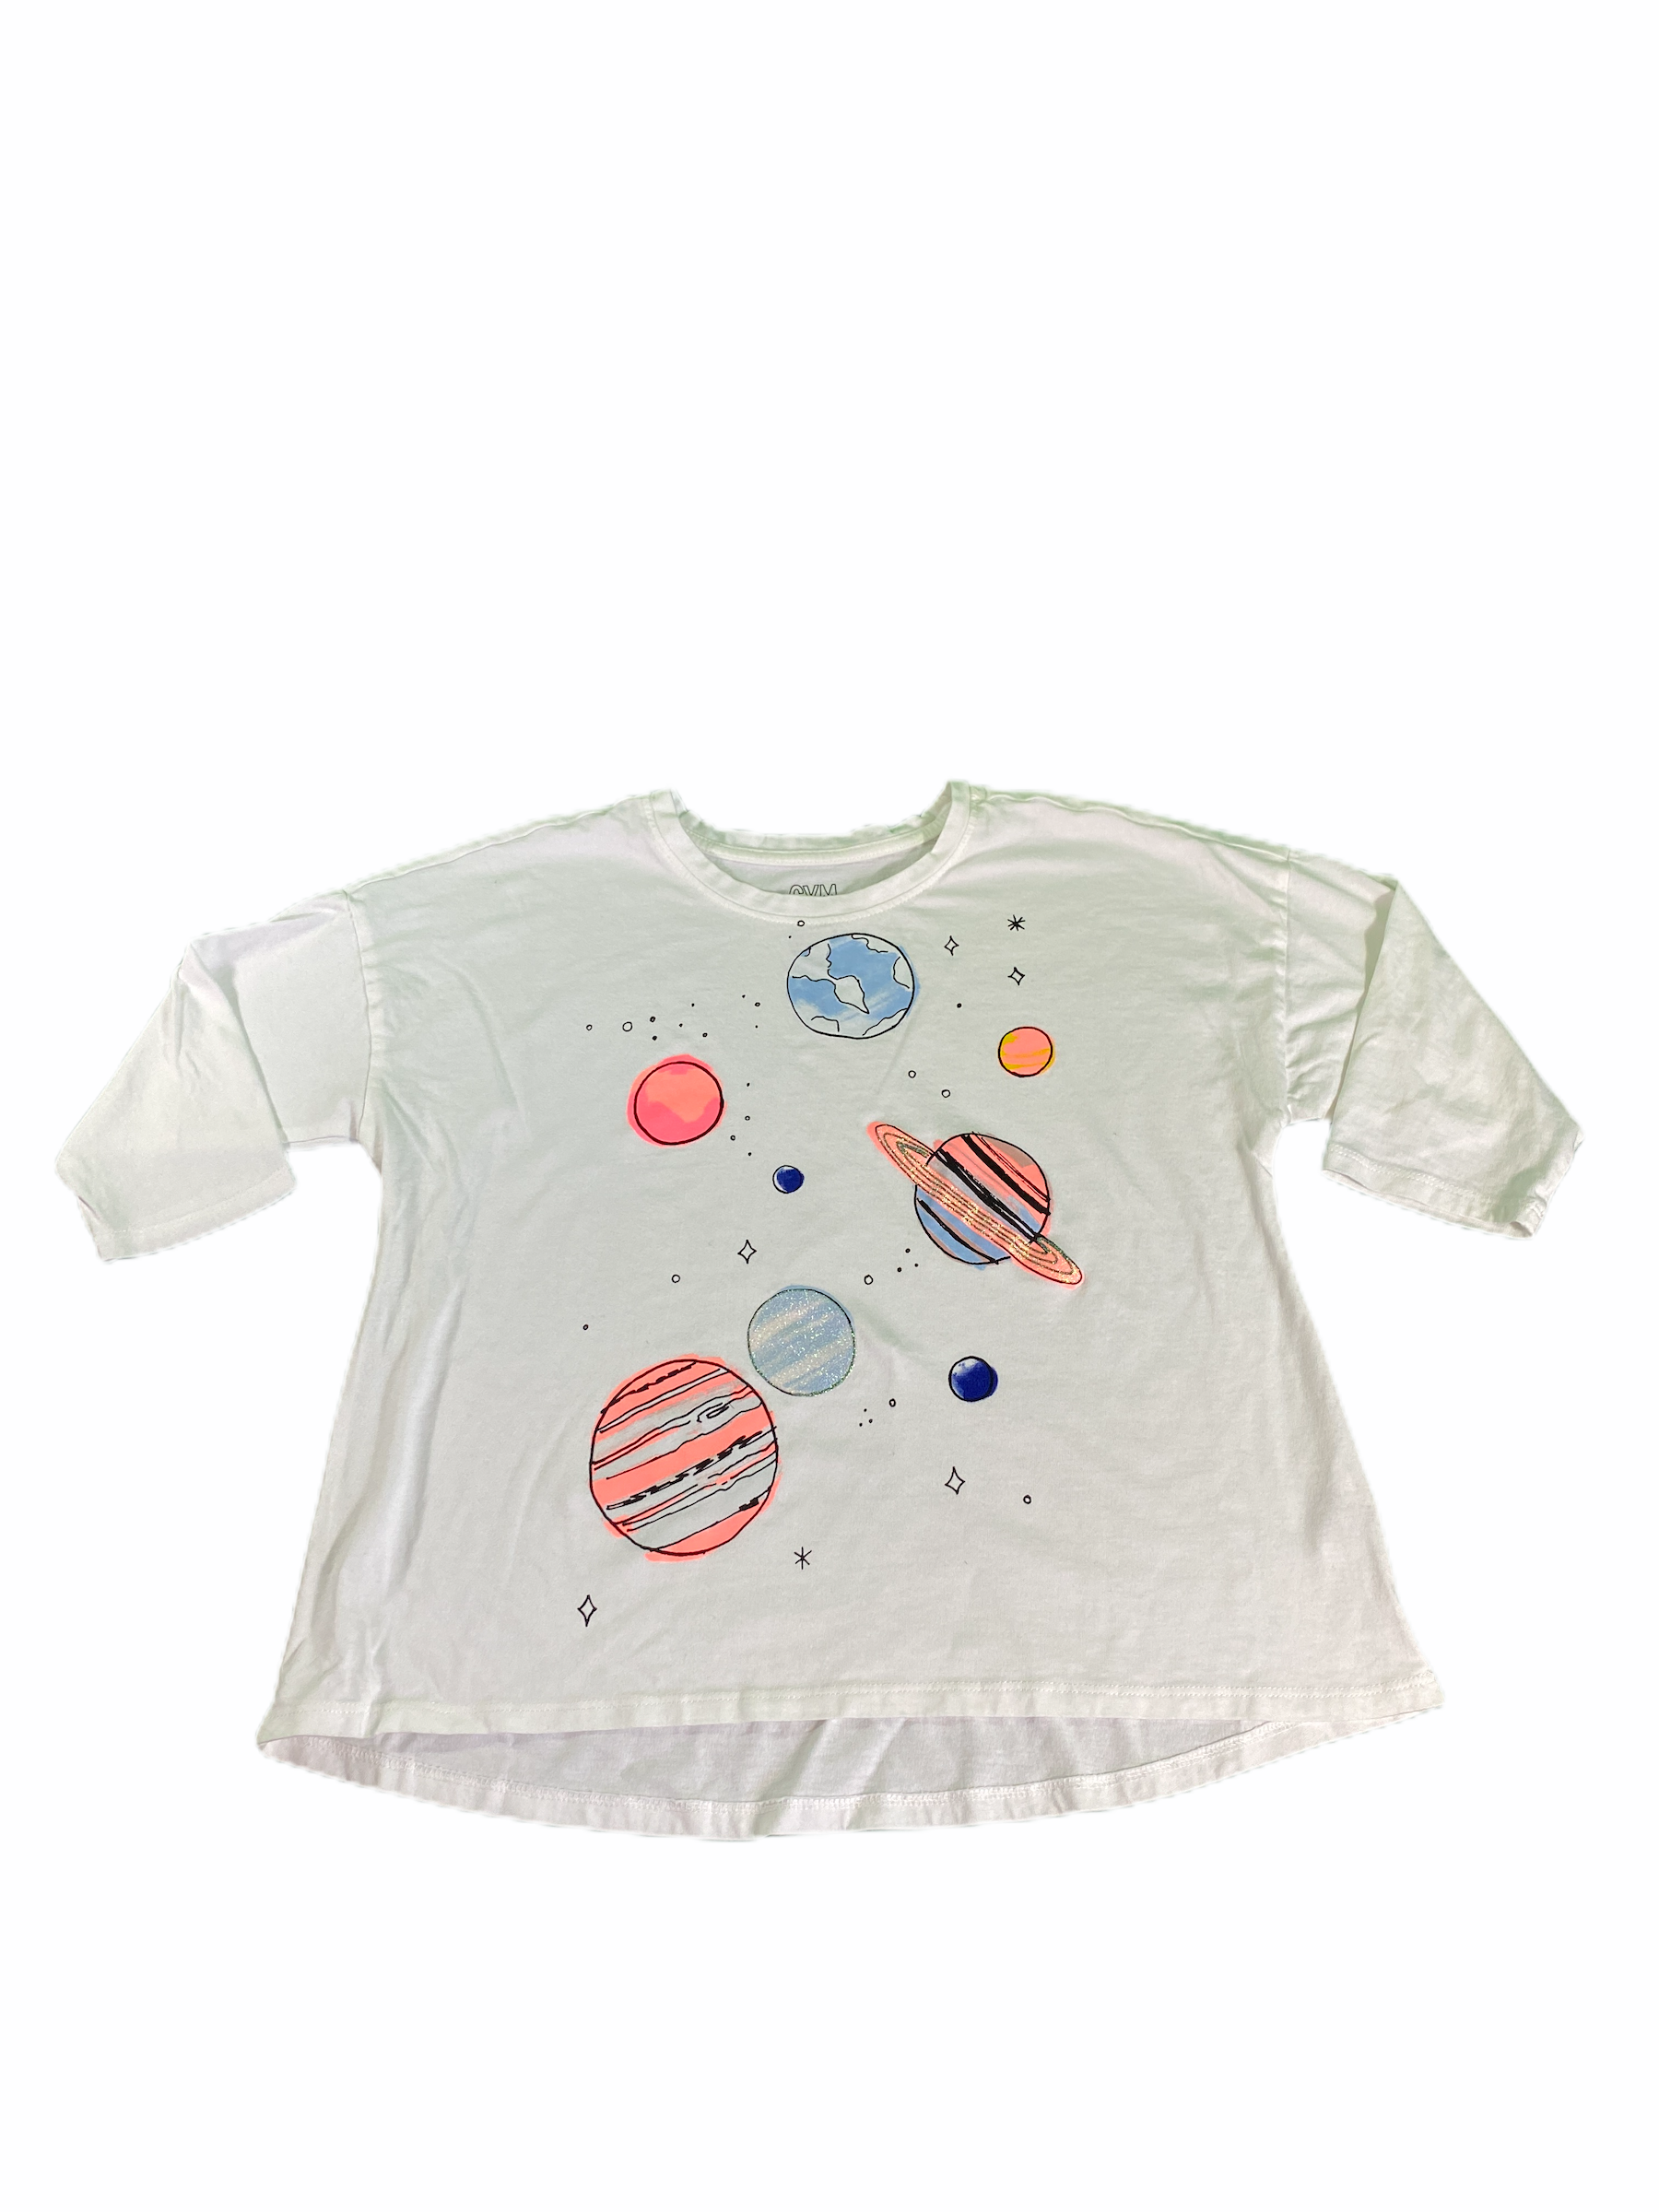 Gymboree 3/4 Sleeve Space Tee (7/8 Girls)